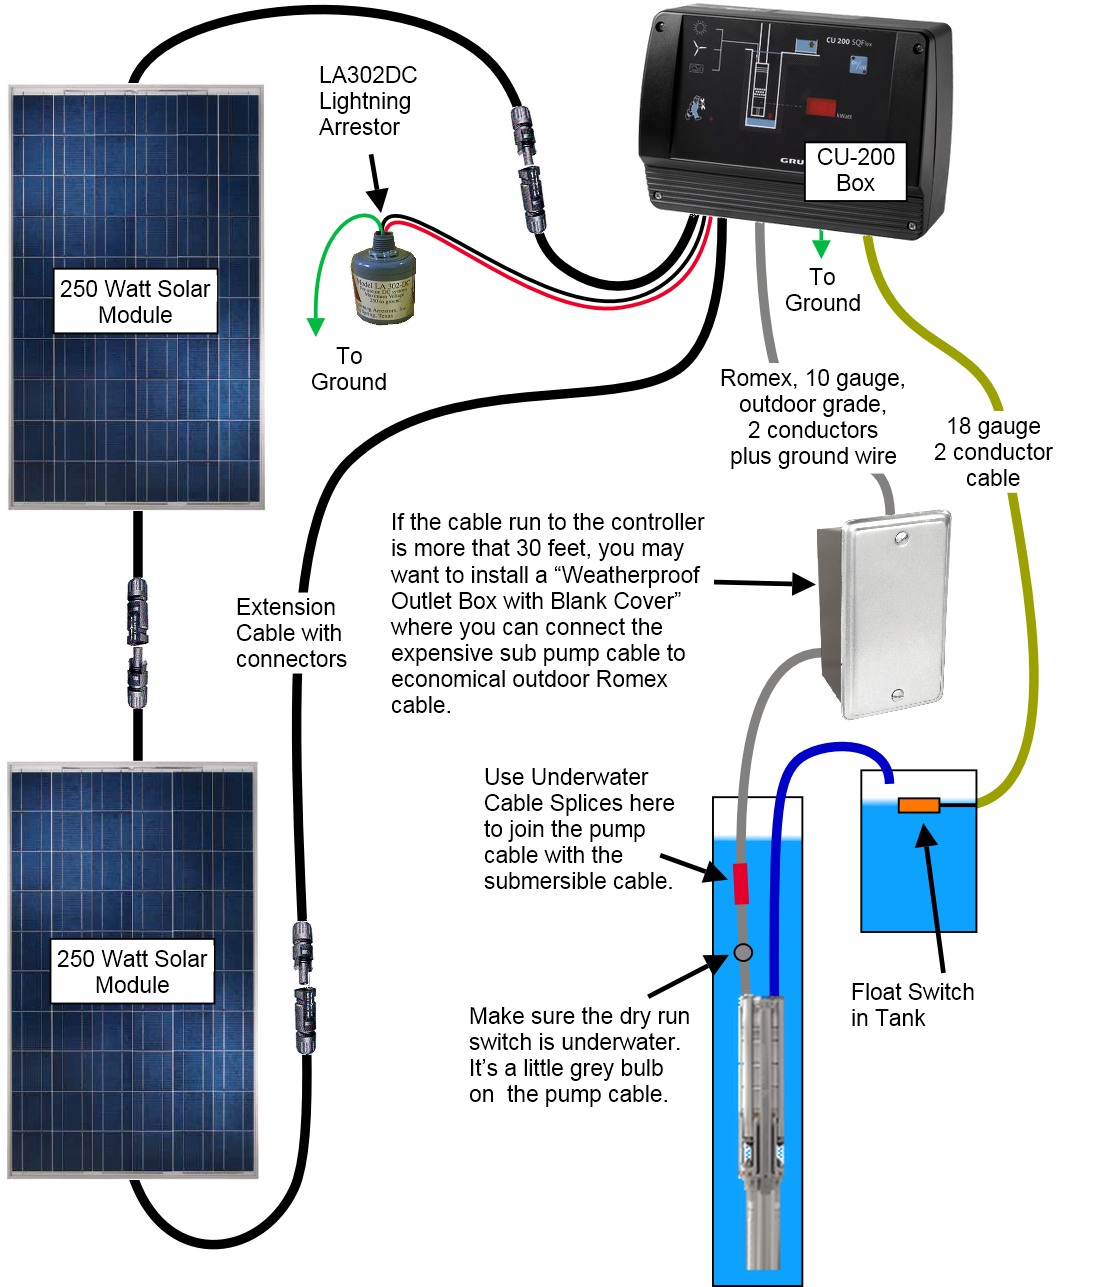 grundfos sqflex installation diagram?t=1422423383 grundfos sqflex solar water pump wiring diagram water well wiring diagram at eliteediting.co